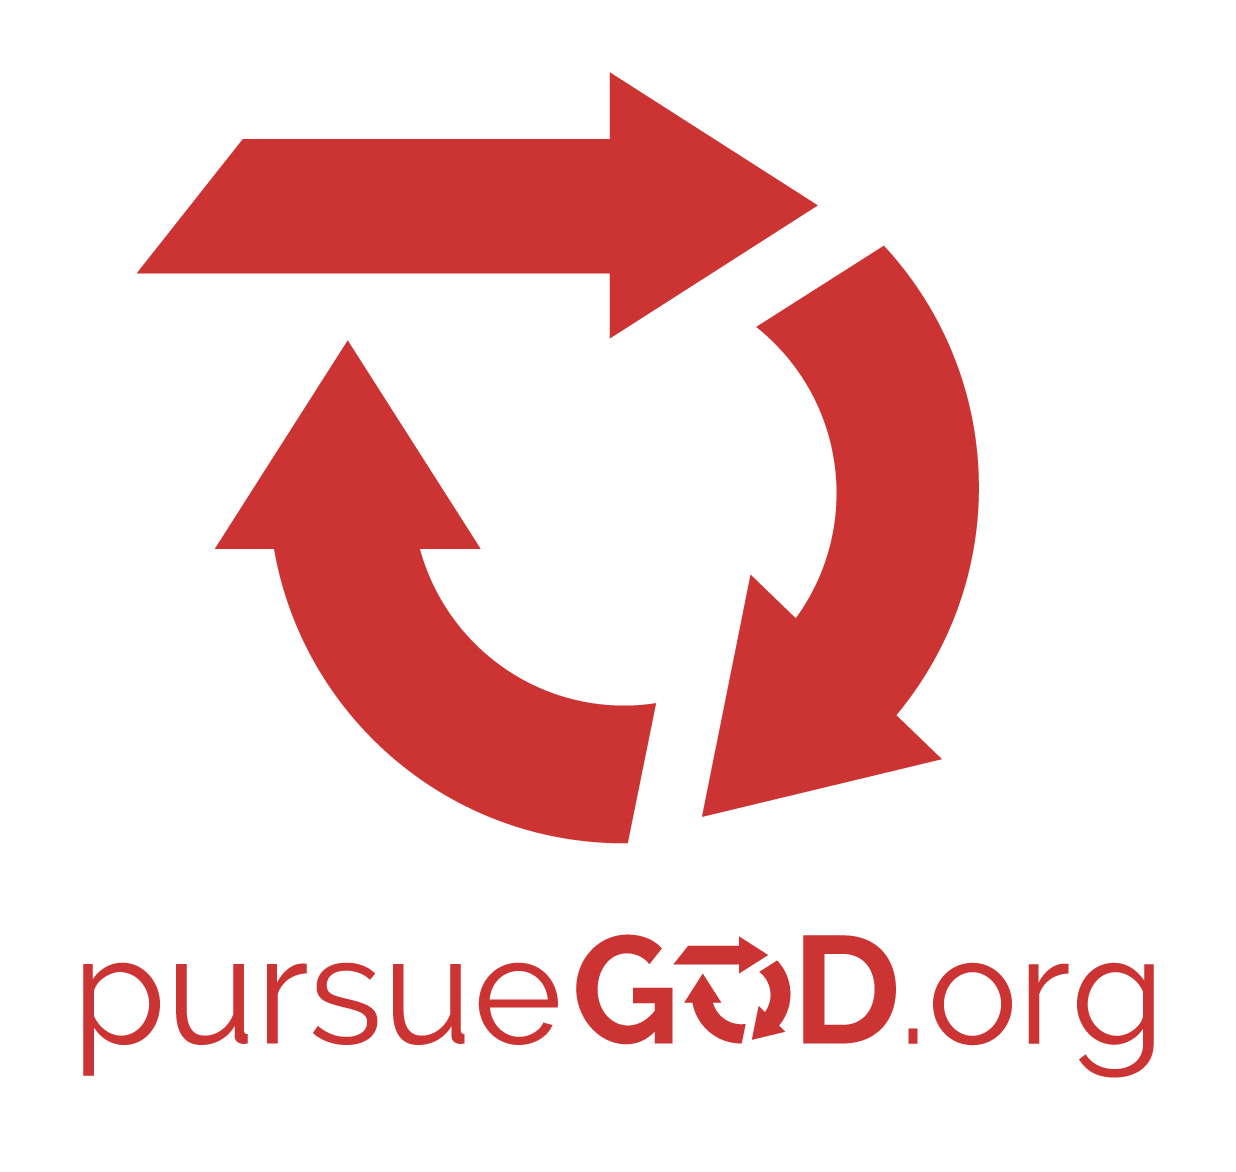 - Alpine Church began PursueGOD.org as a website to help people, families, small groups, and churches pursue God. God has taken this vision beyond our church and reached people all over the globe. Alpine is also a founding partner of the PursueGOD network of churches and ministries.